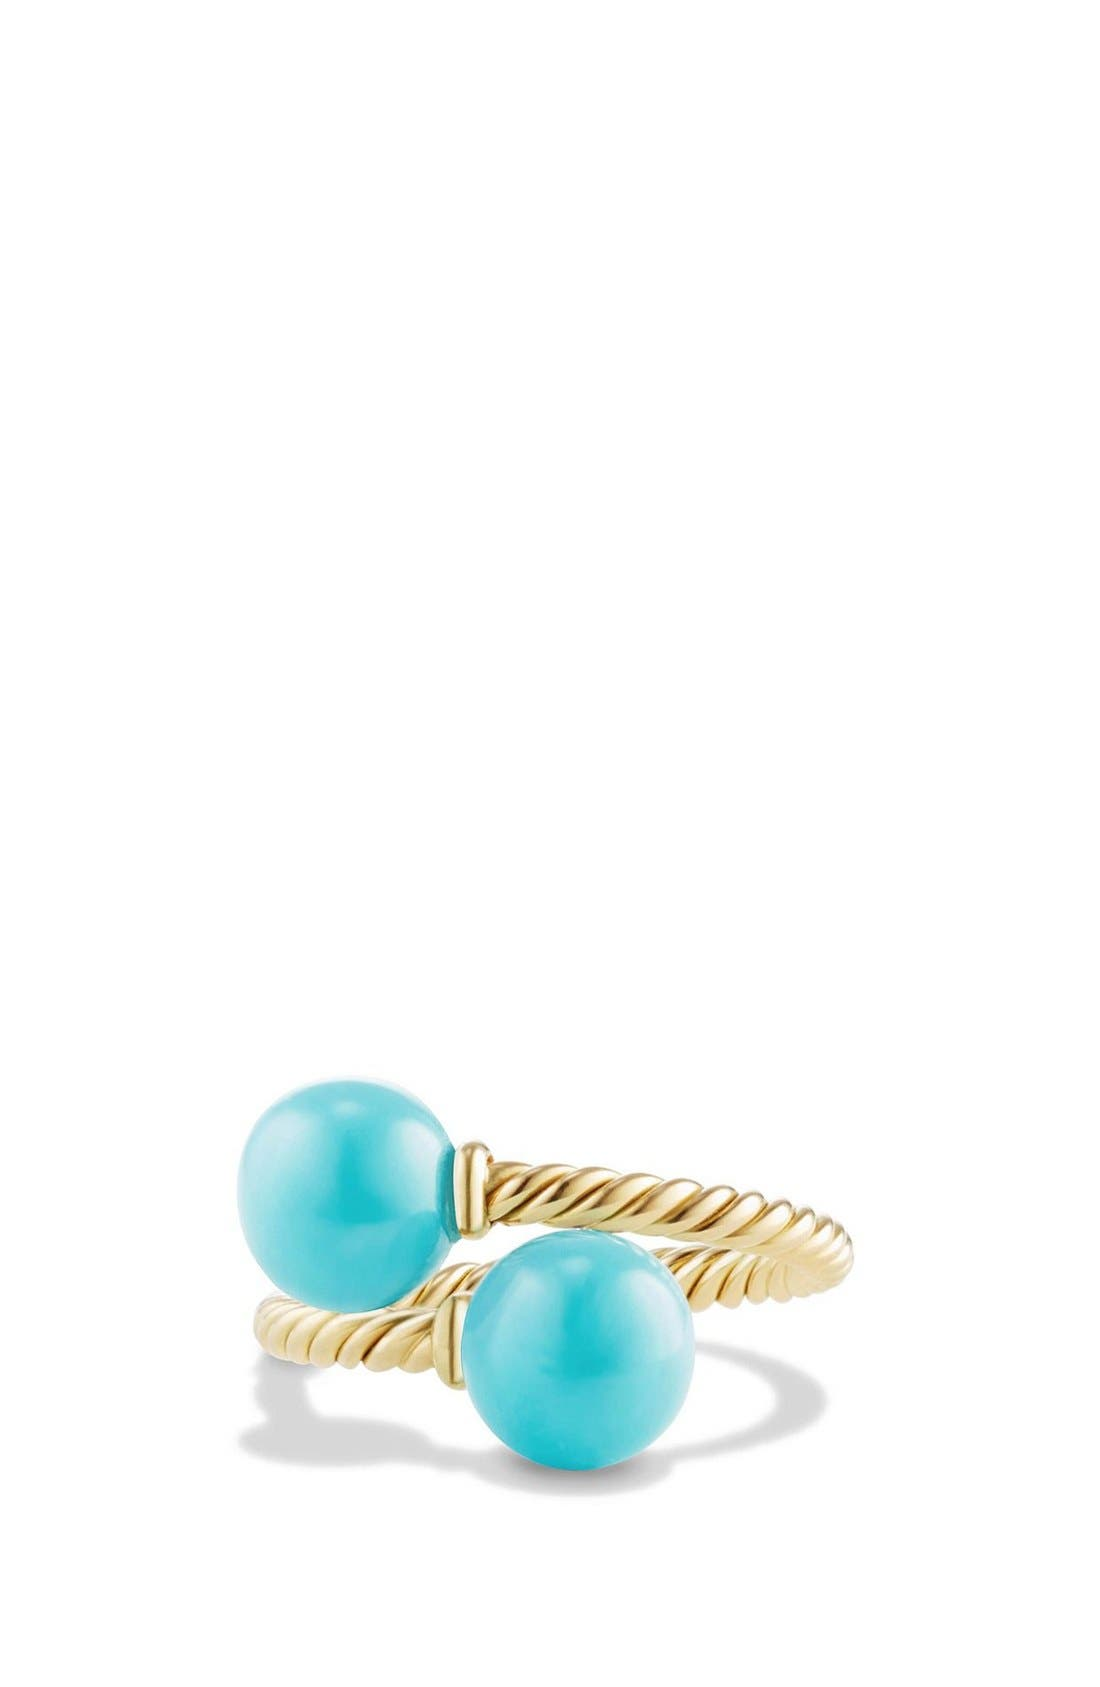 David Yurman 'Solari' Bead Ring with Turquoise in 18K Gold